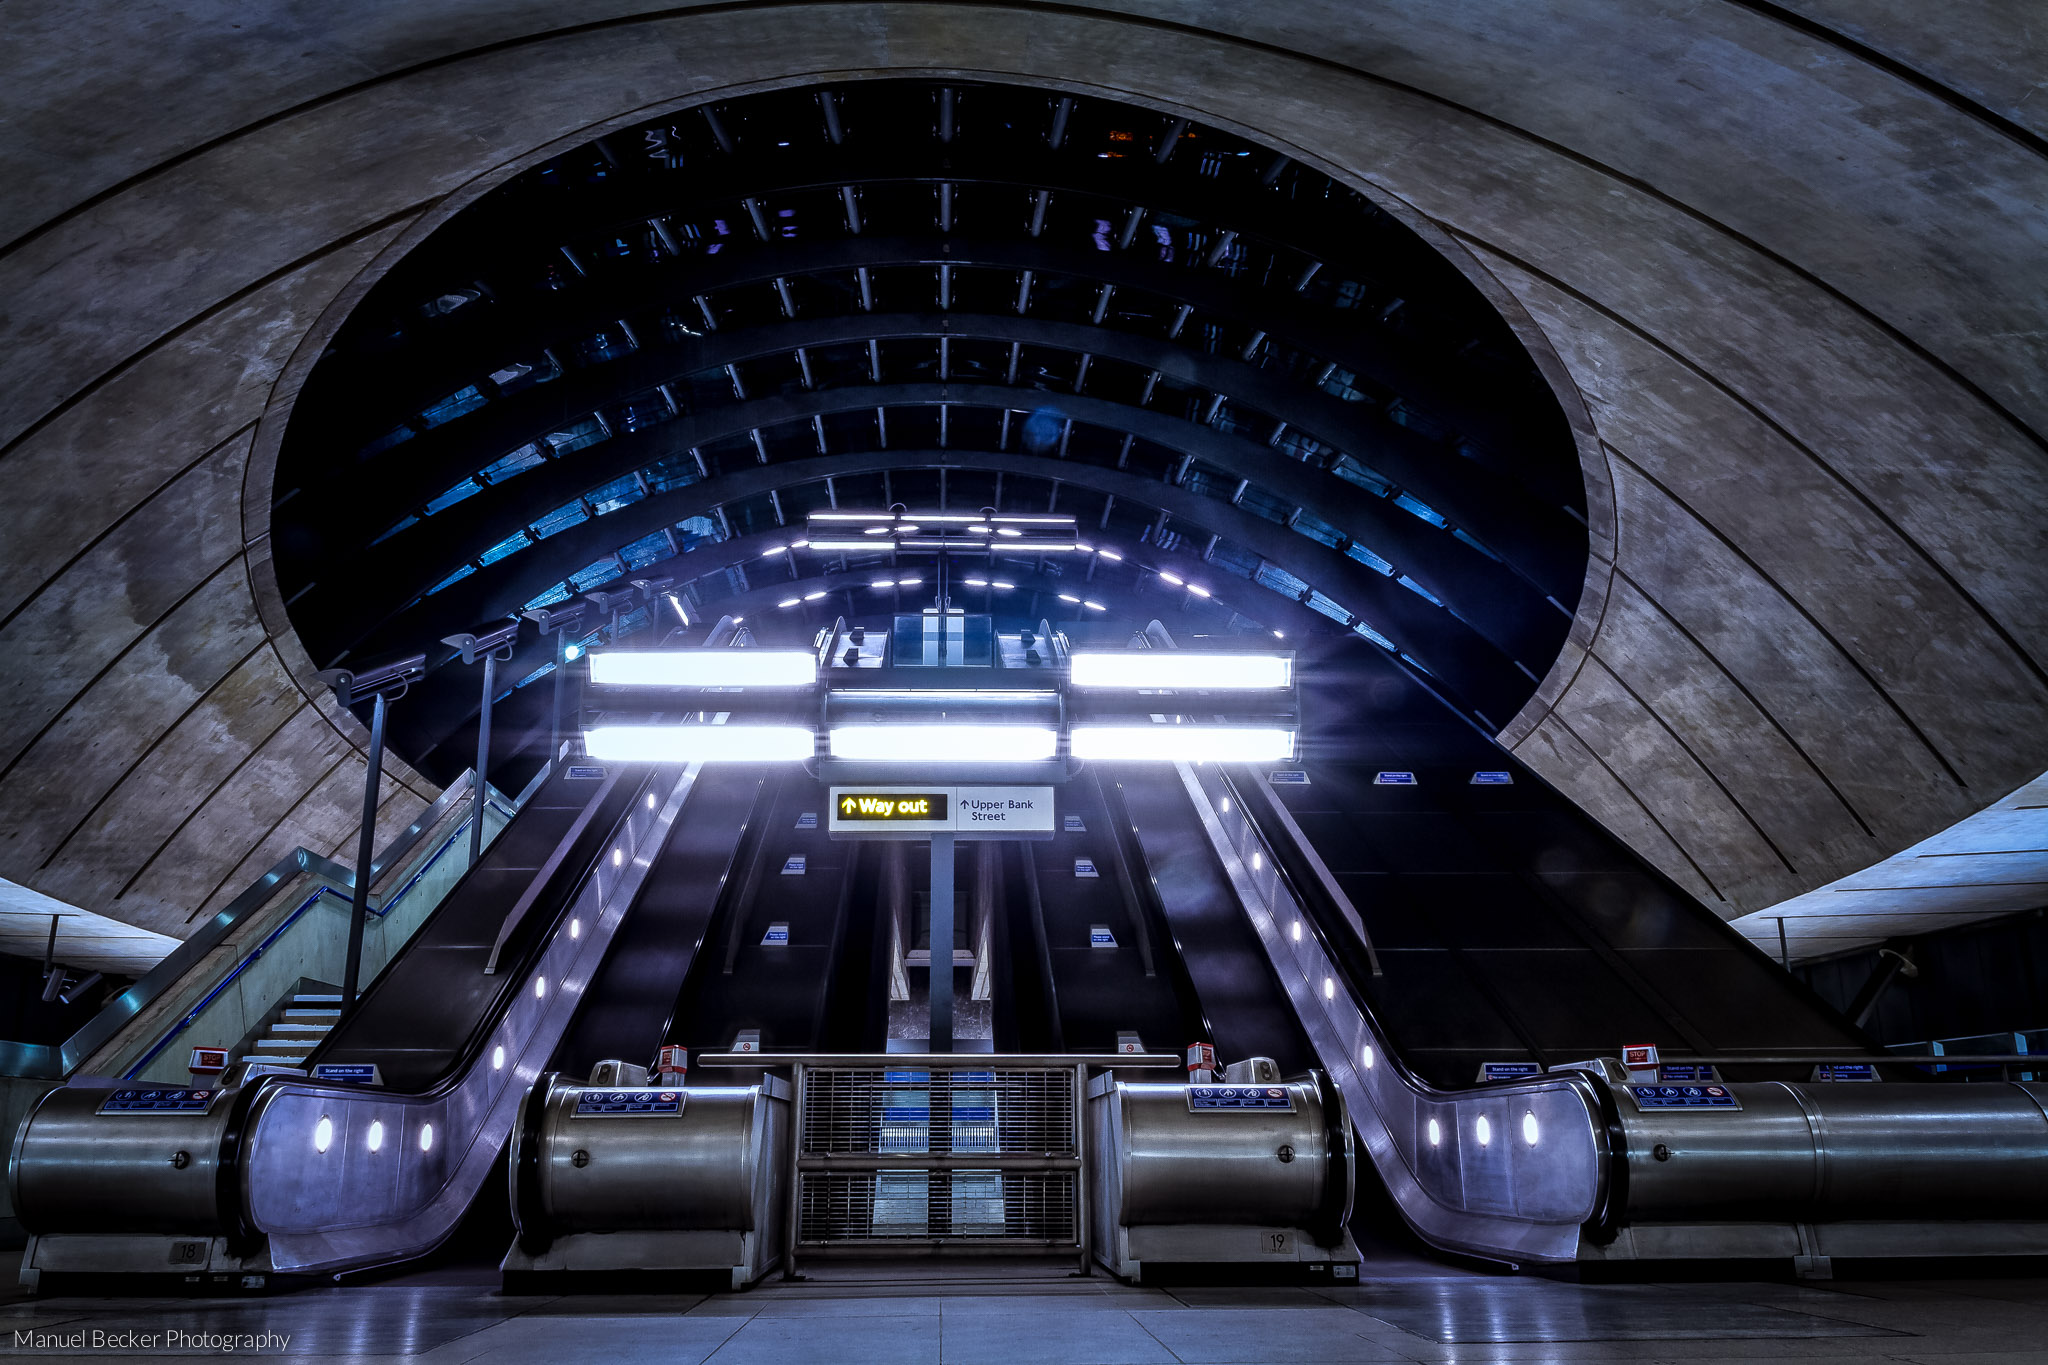 Canary Wharf Underground, London, United Kingdom